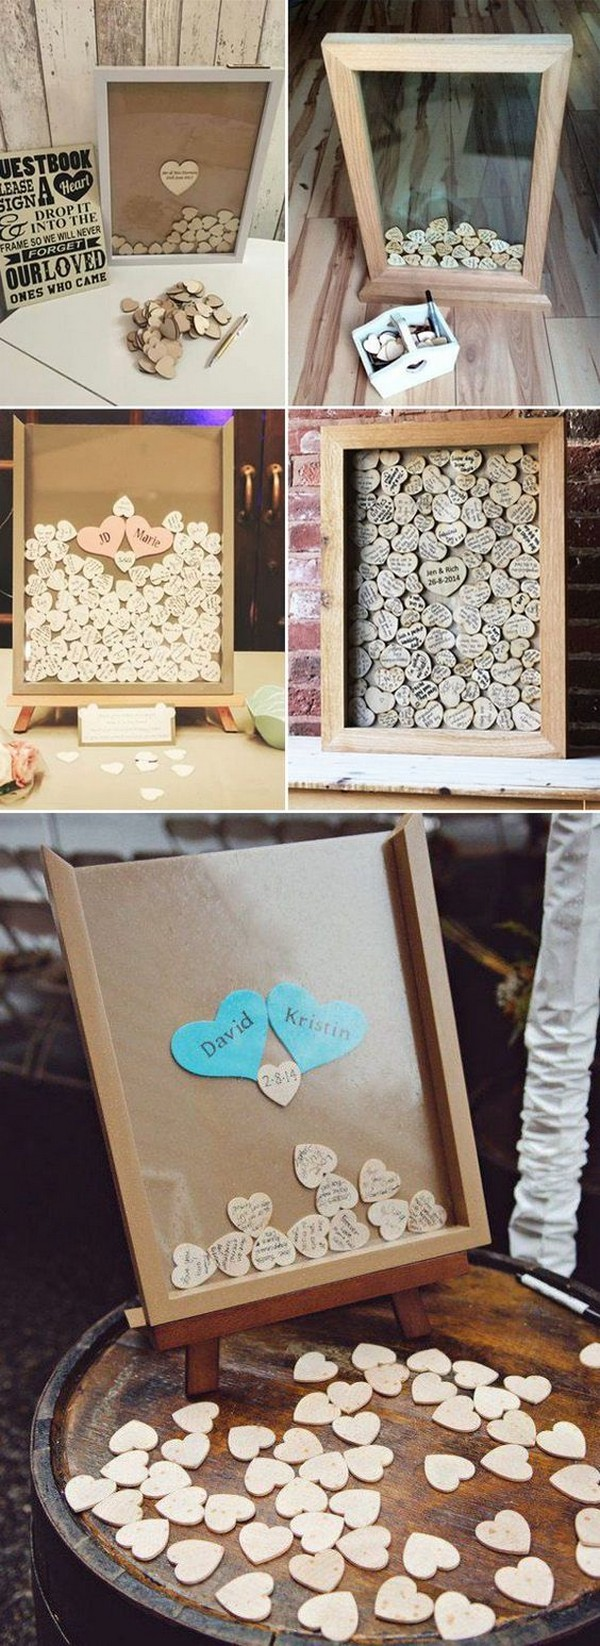 25 Creative Wedding Guest Book Ideas Emmalovesweddings